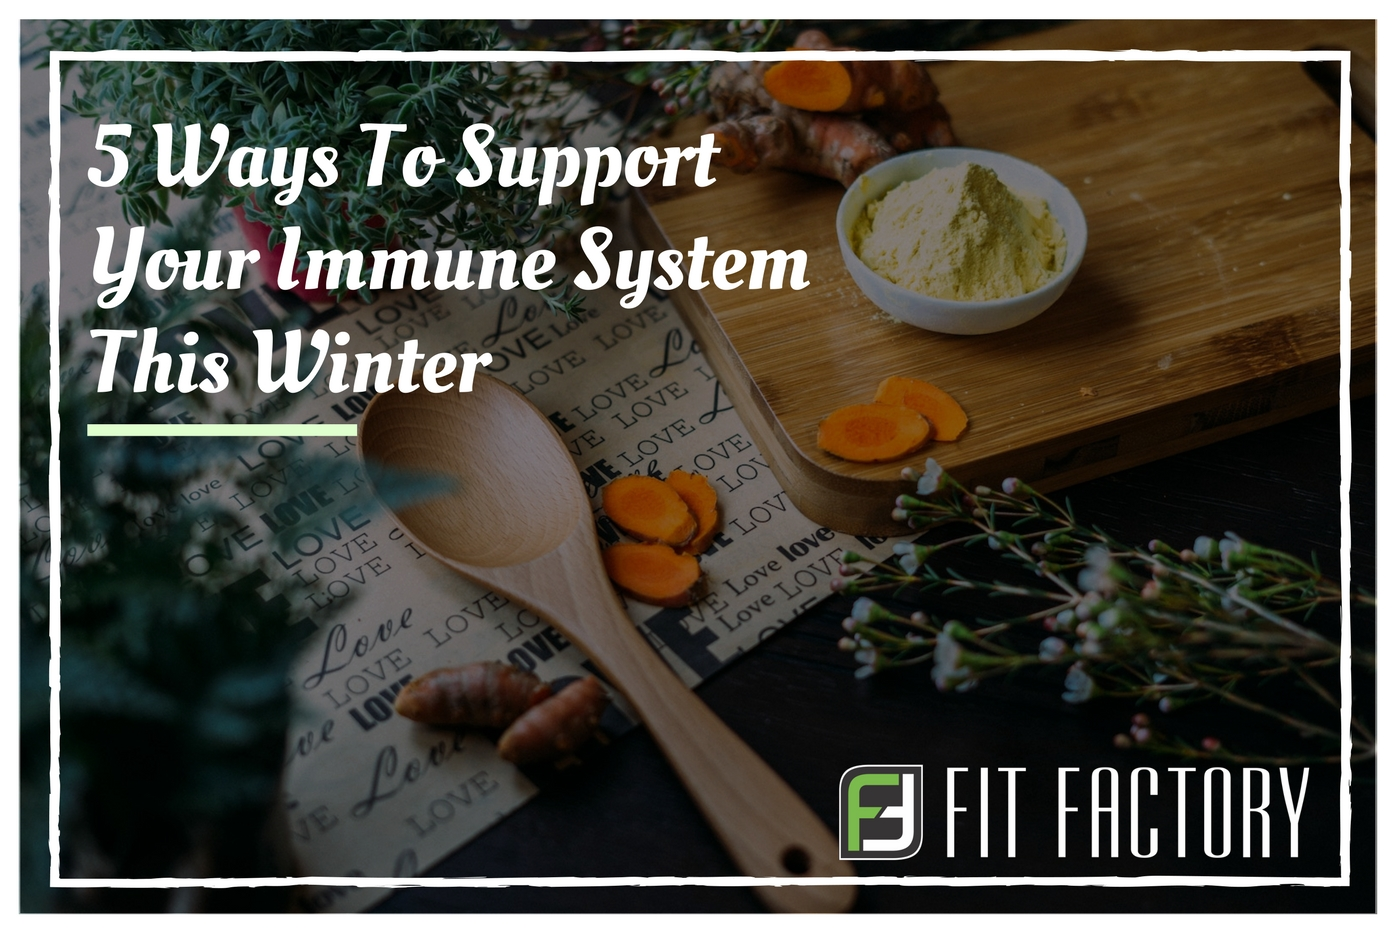 5 Ways To Support Your Immune System This Winter